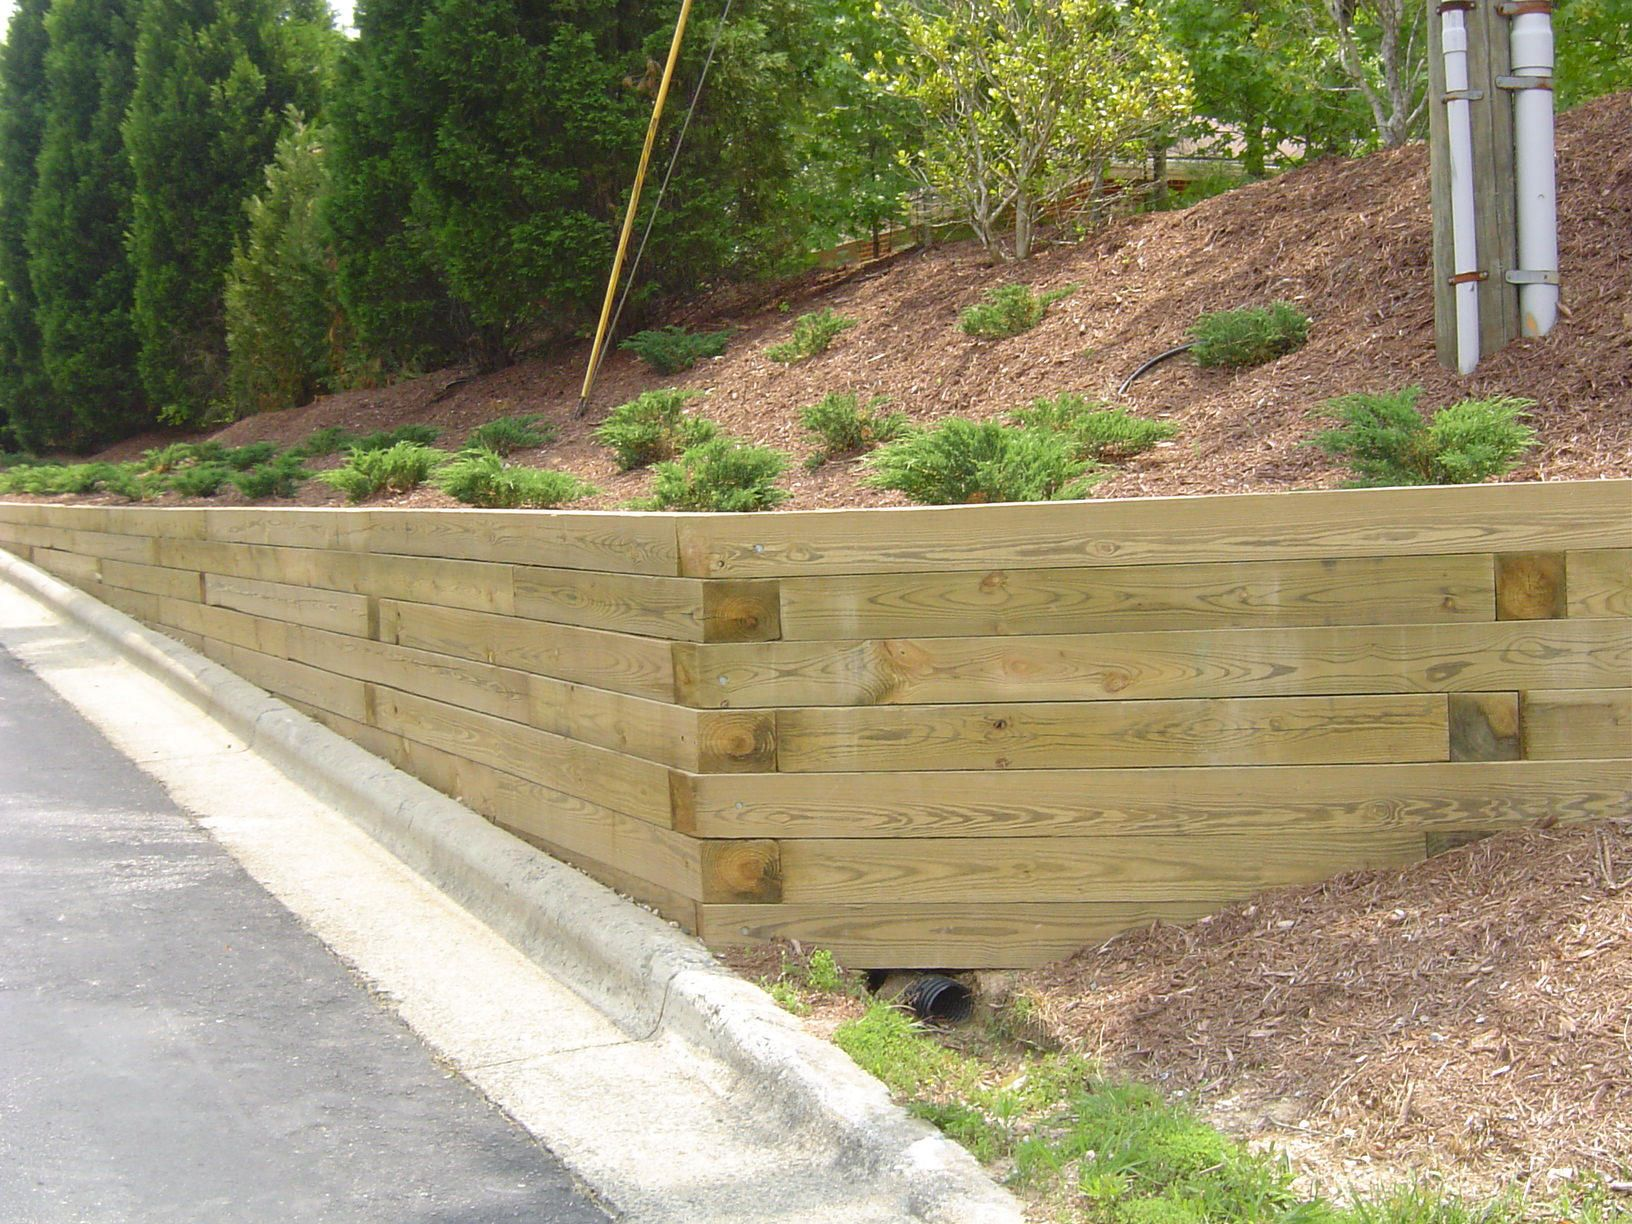 Treated Wood Retaining Wall Design Landscape Timber How To Build